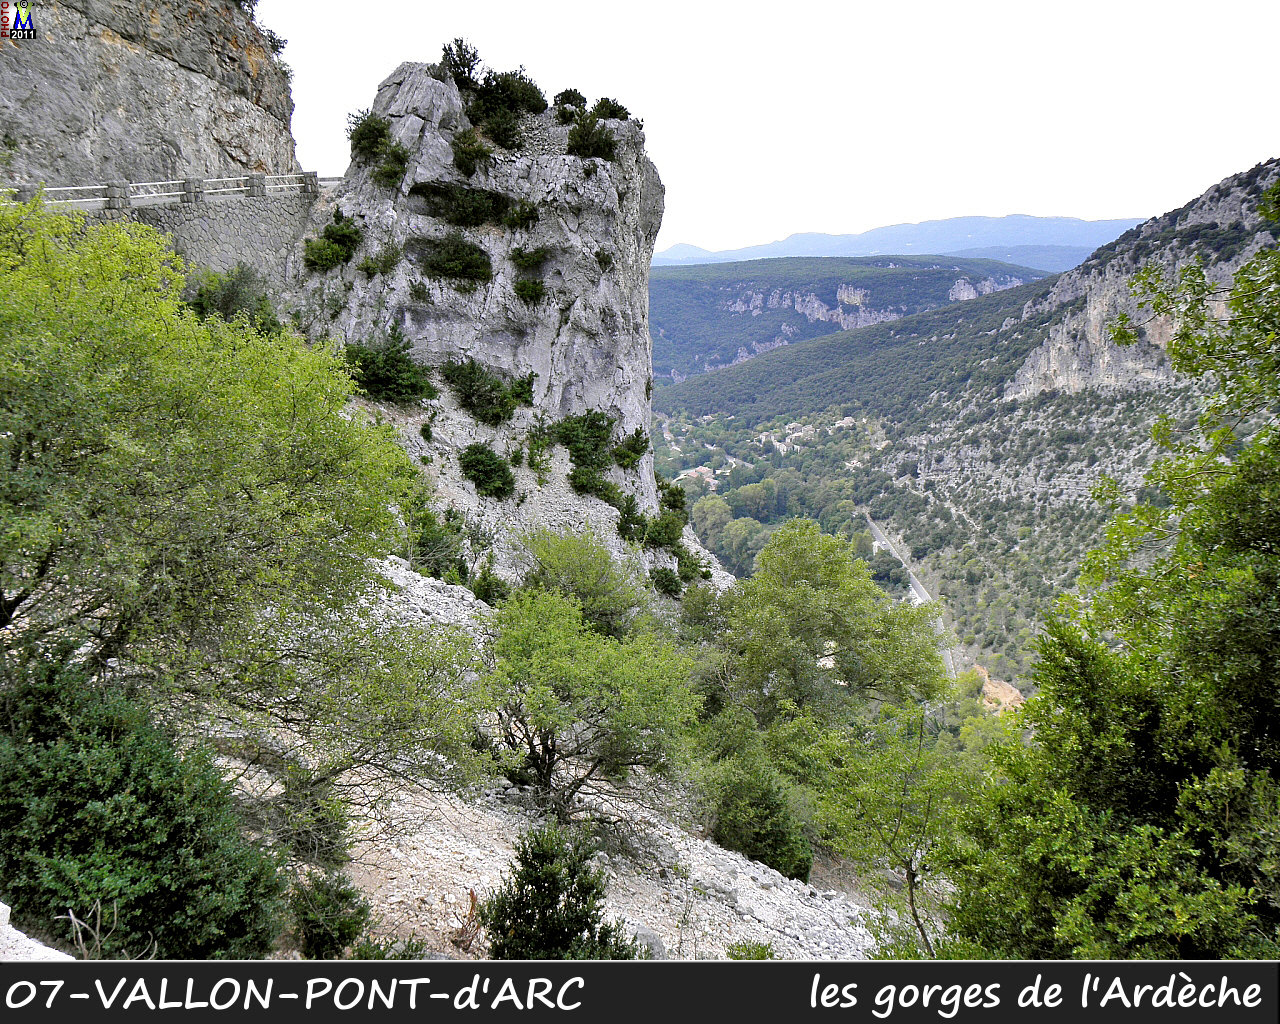 07VALLON-PONT-ARC_gorges_120.jpg